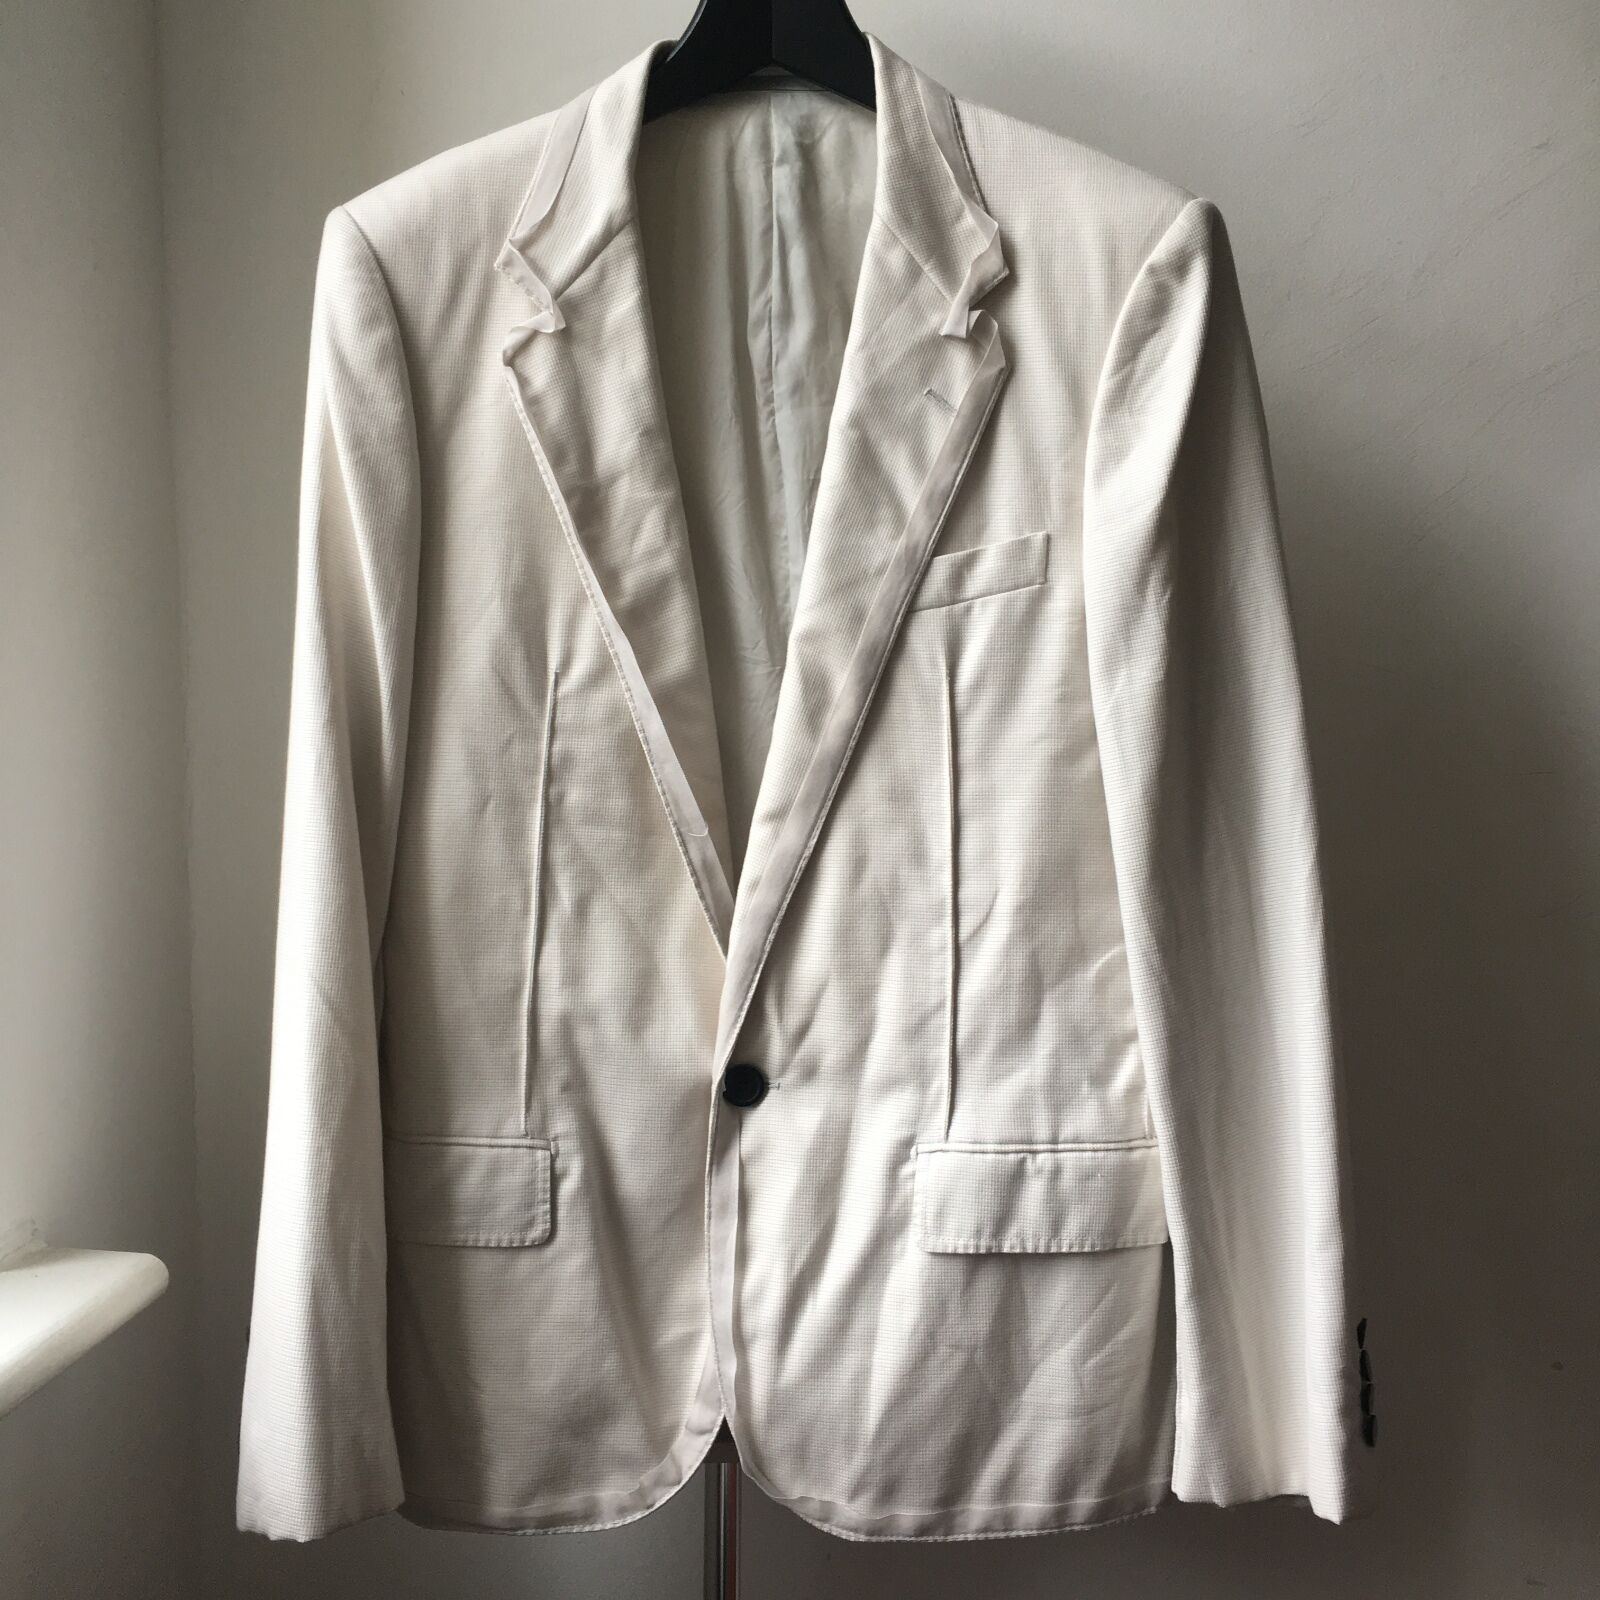 Very Cool LANVIN baumwolle jacke Sz 48 Lucas Ossendrijver early collection